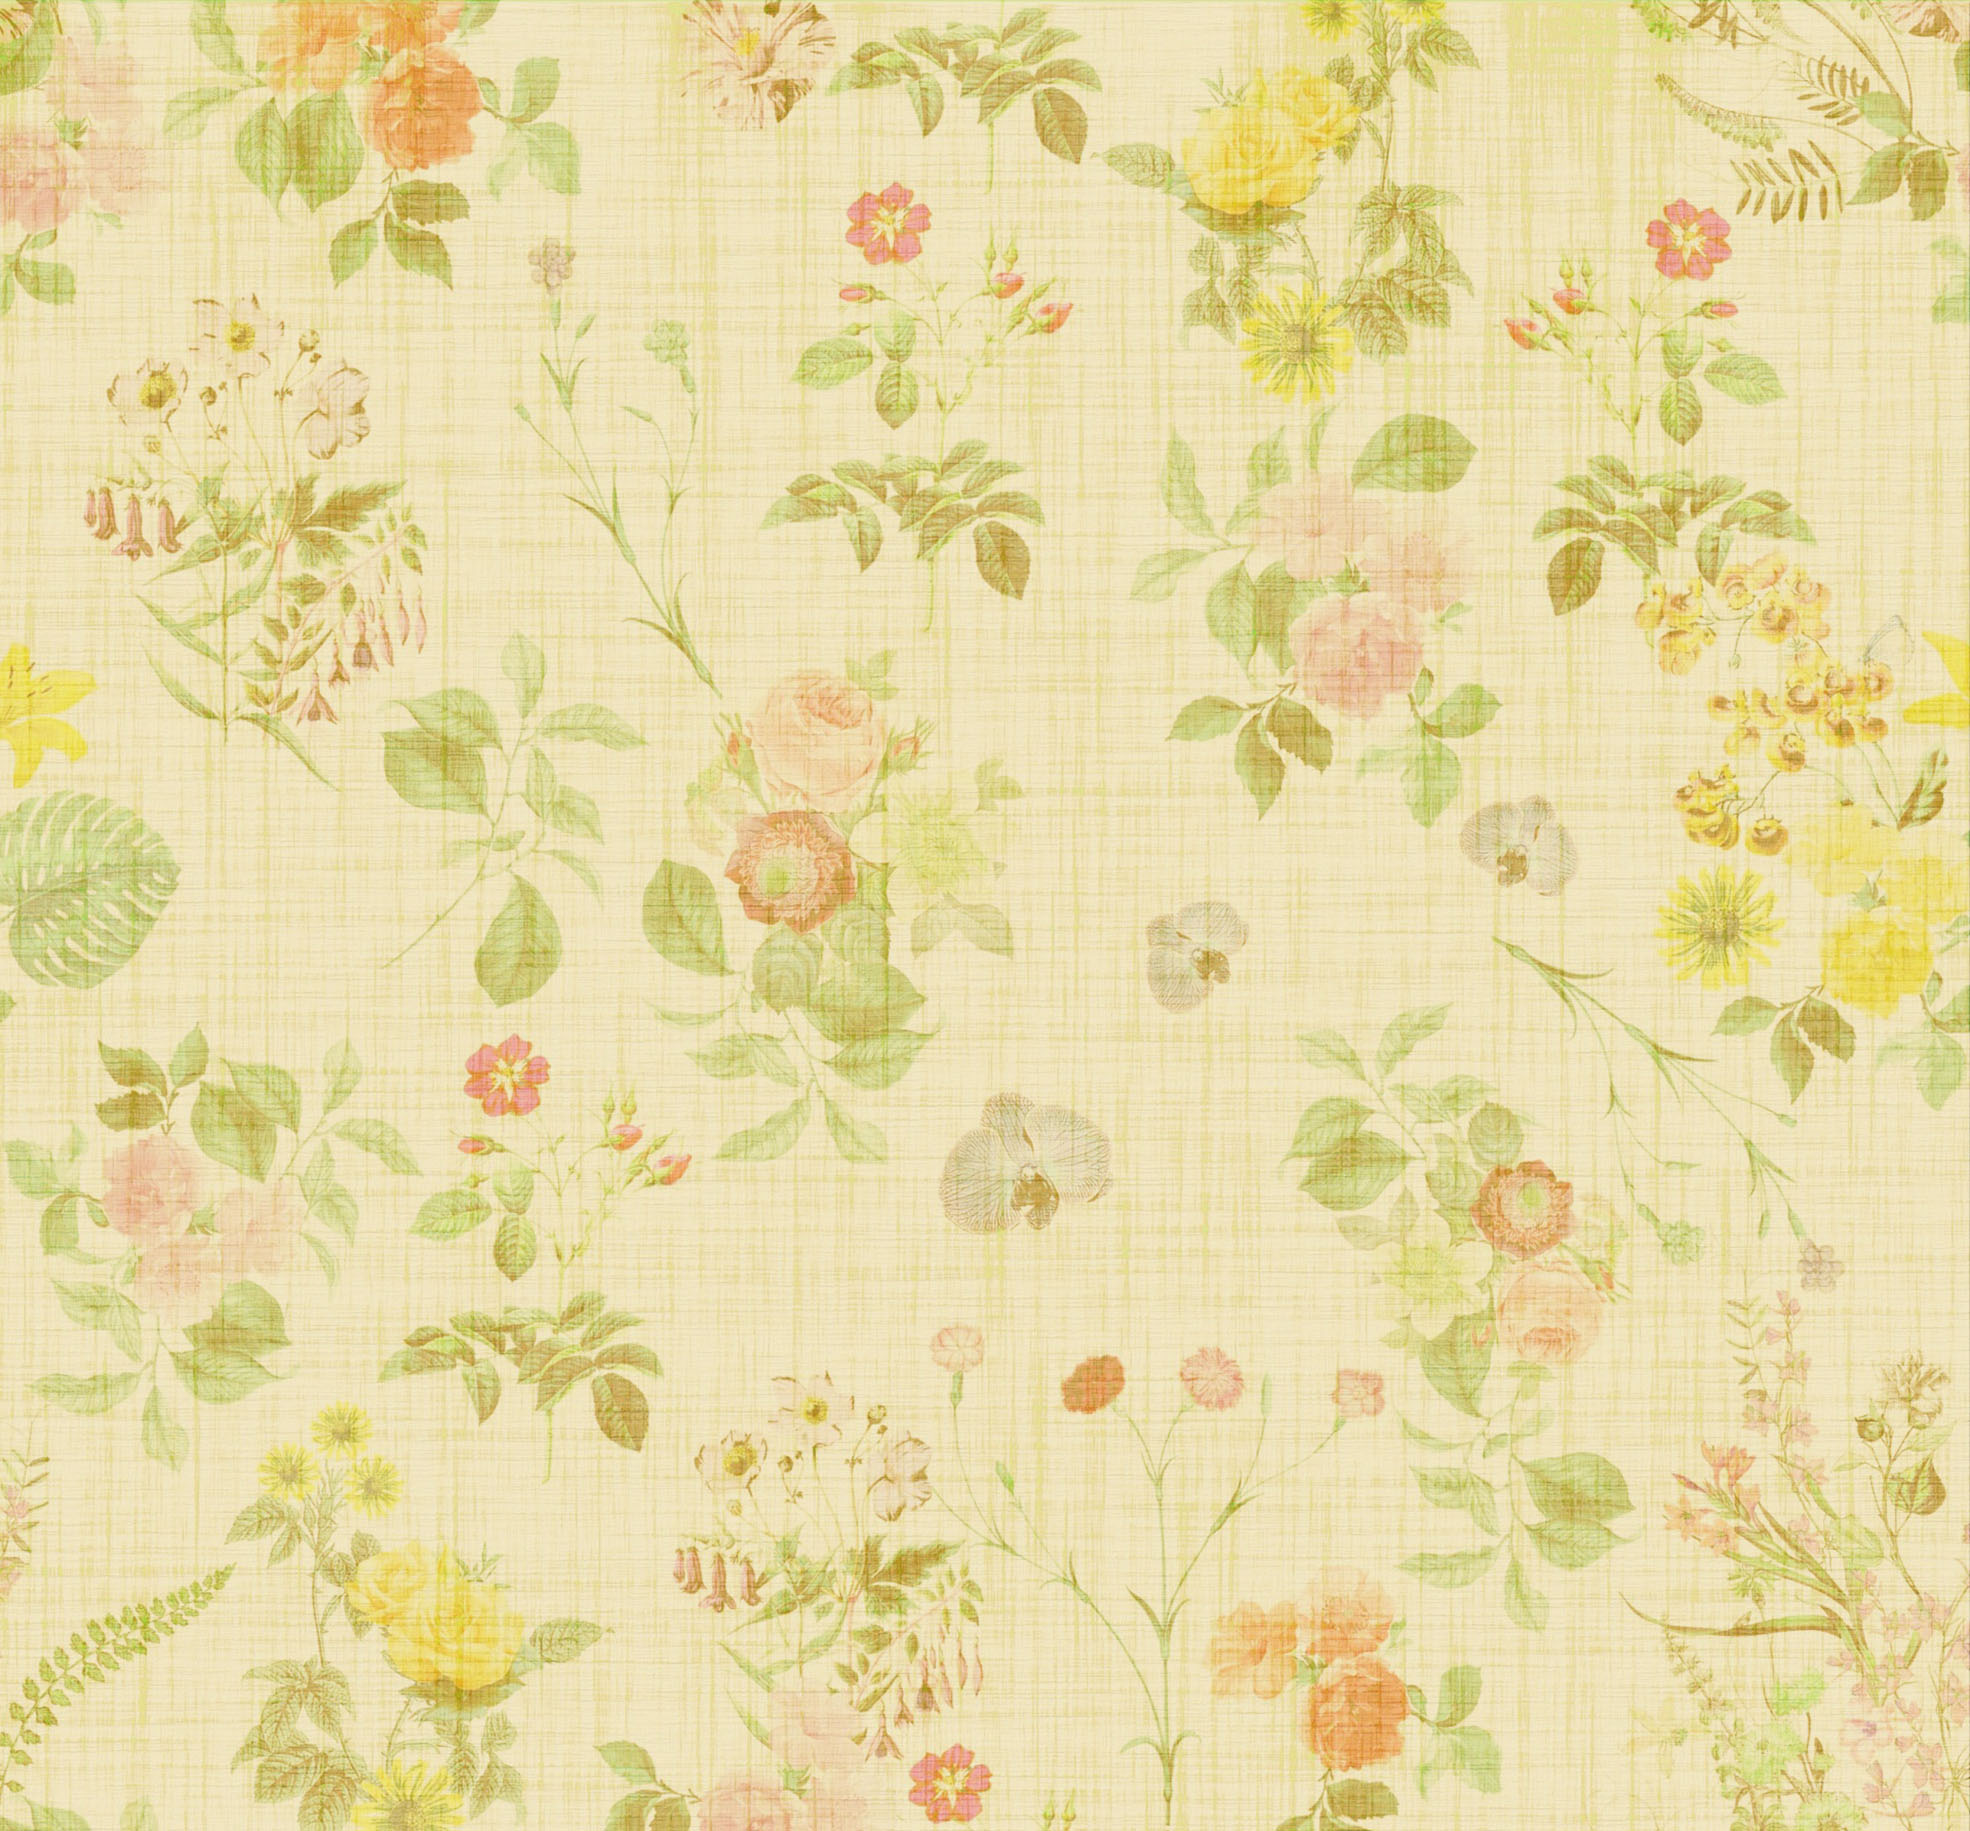 floral vintage background for scrapbooking